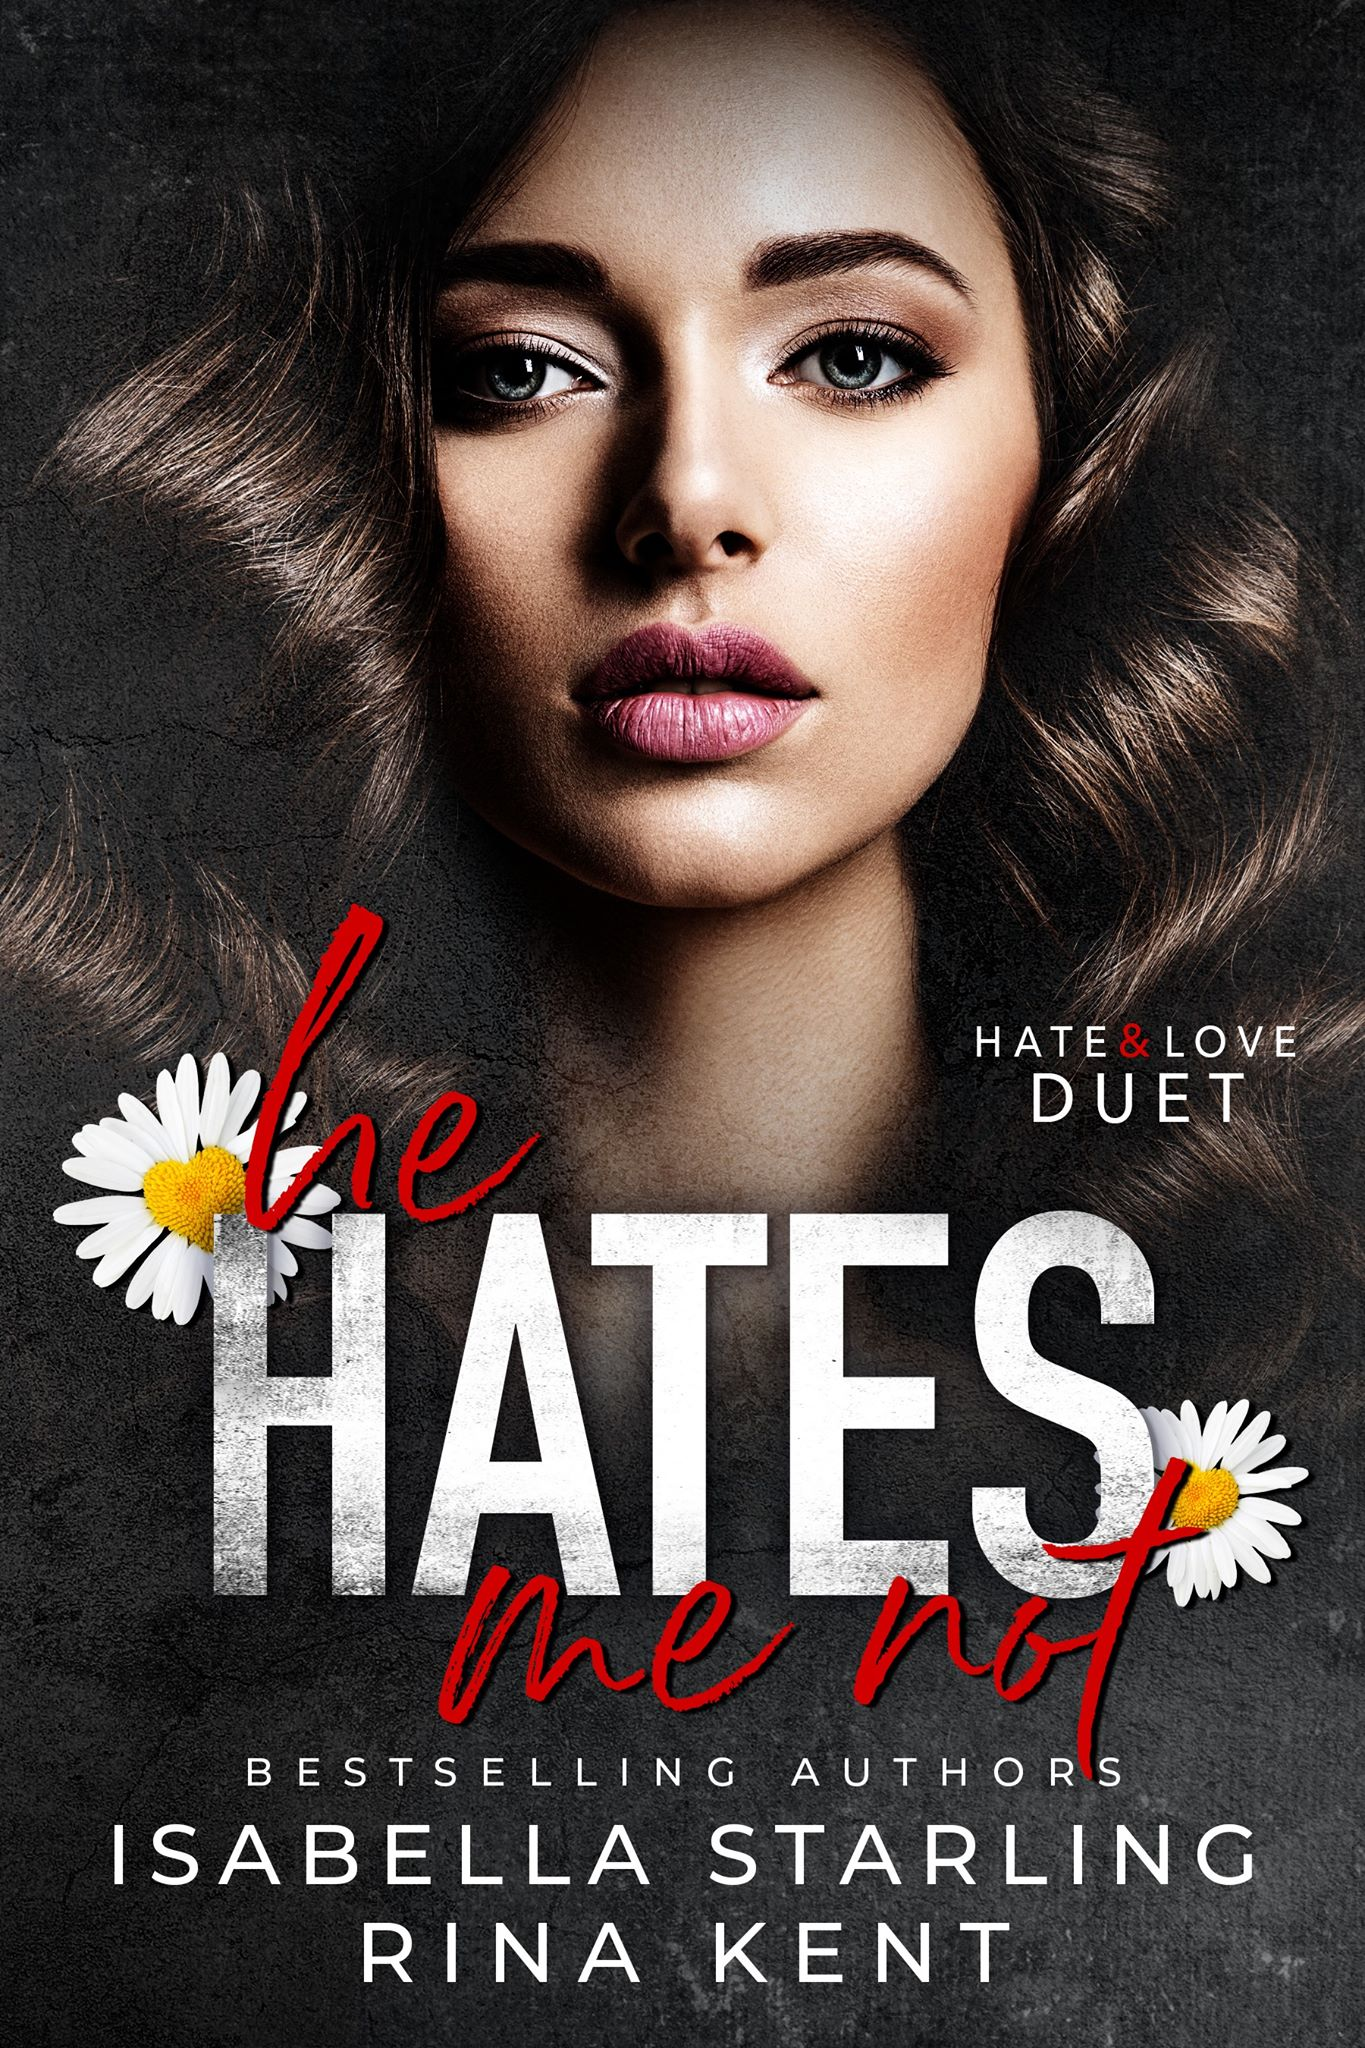 Rina Kent - Hate & Love Duet 2 - He Hates Me Not